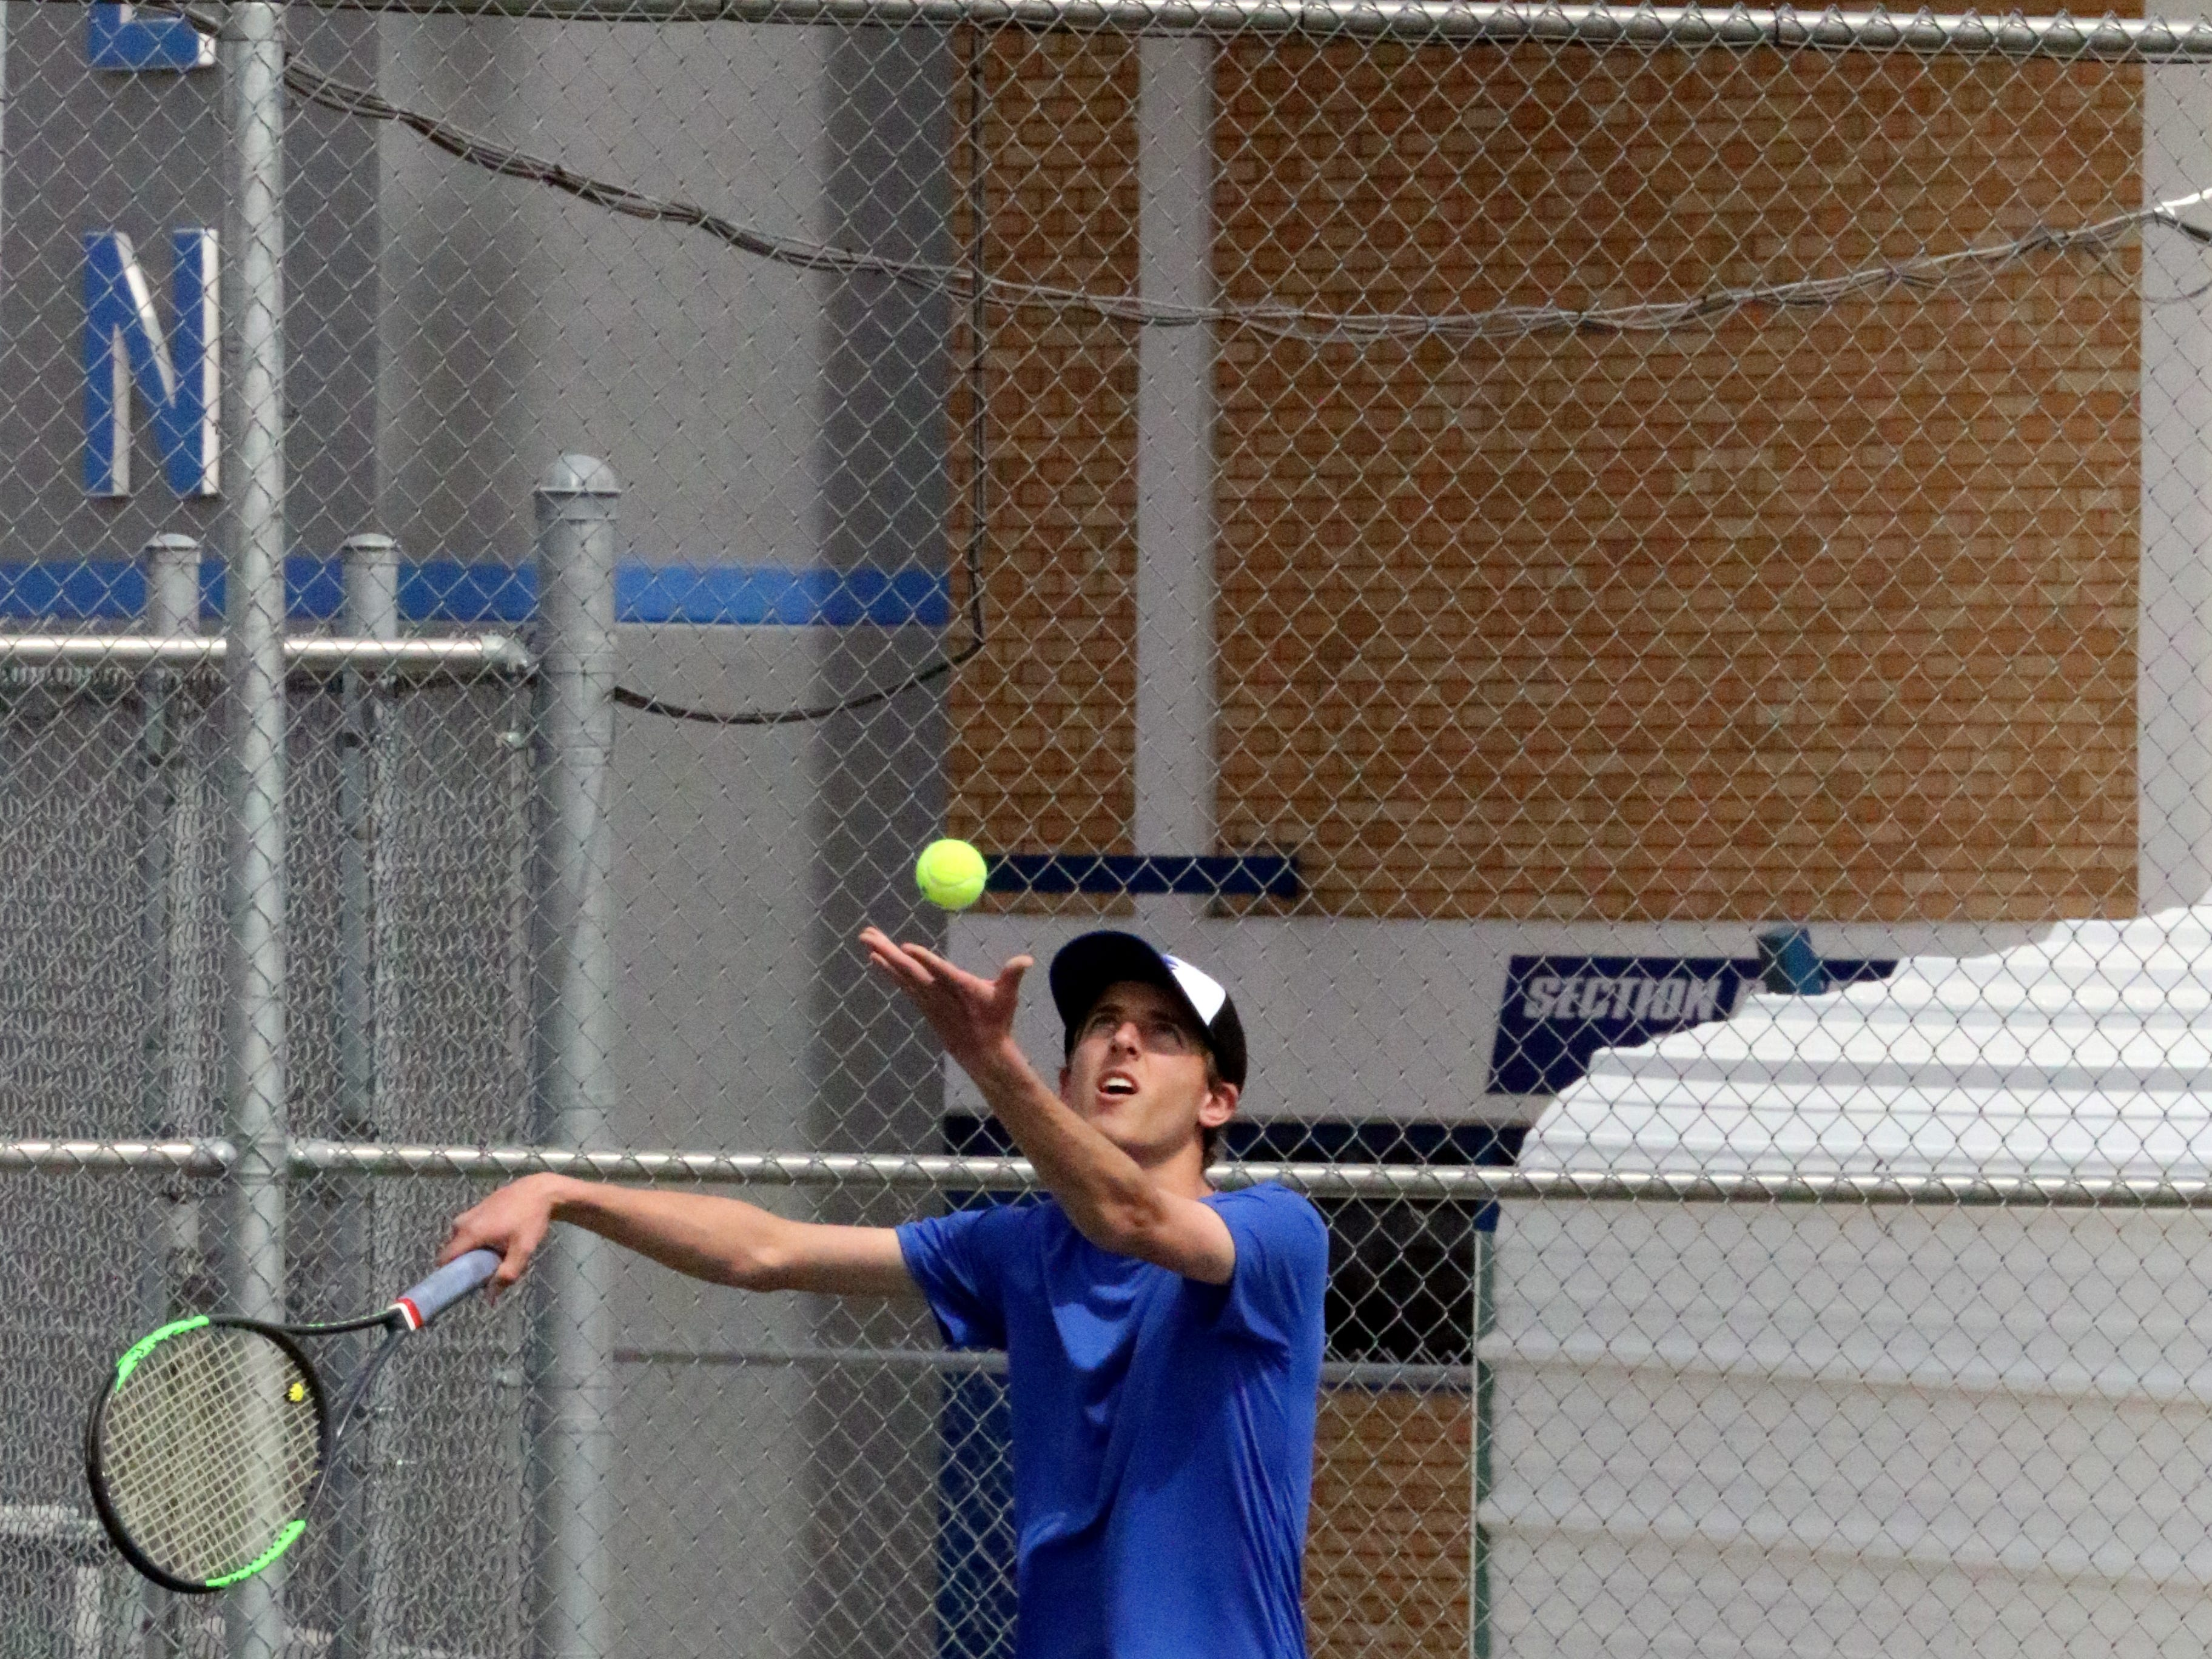 Photo highlights from Friday's portion of Carlsbad's tennis tournament. The Farmington girls took home first plce.